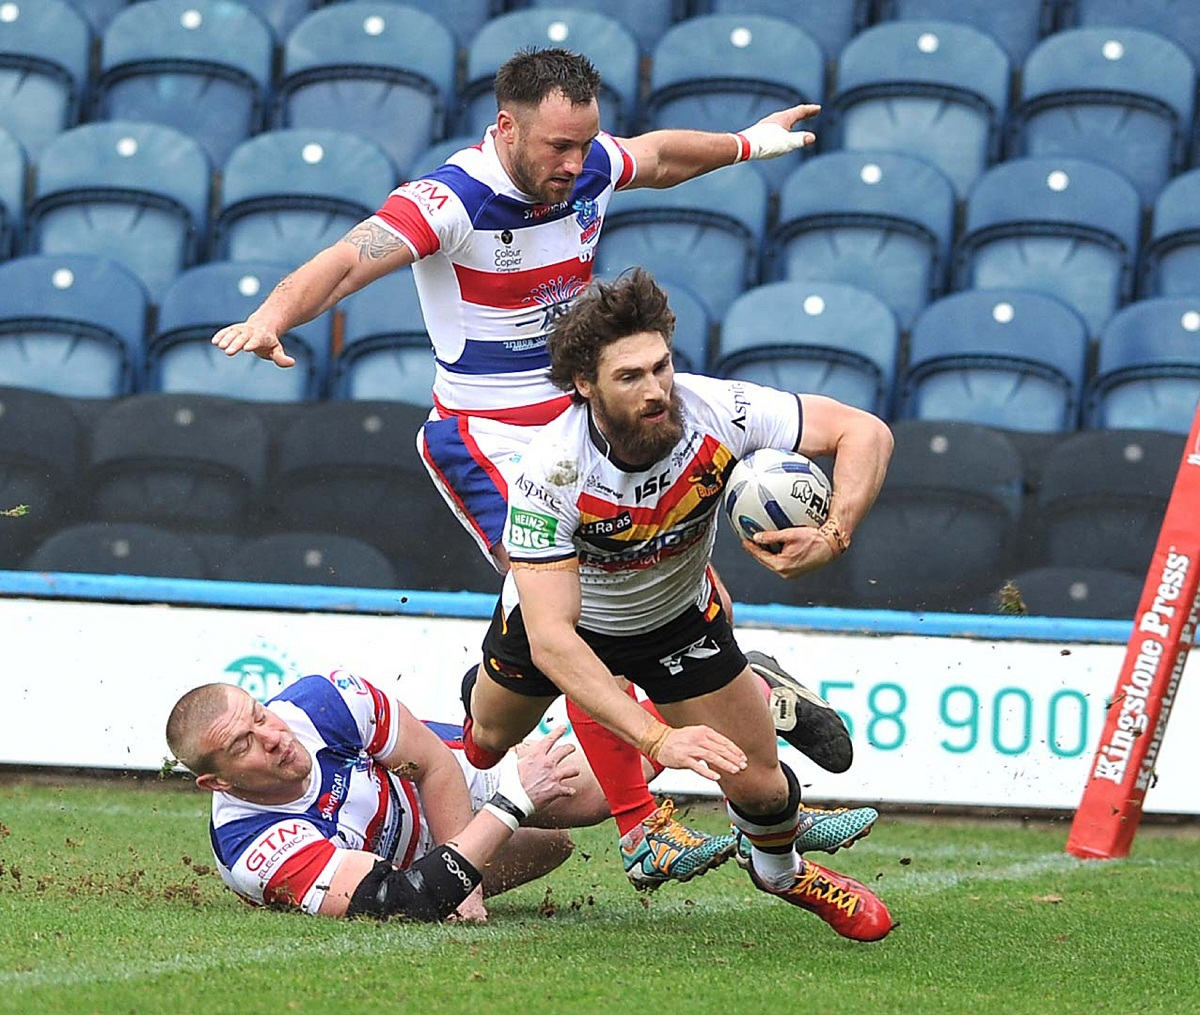 Jarrod Sammut says there is enough quality at new club Wakefield and old club Bradford to mean they won't be fighting off relegation